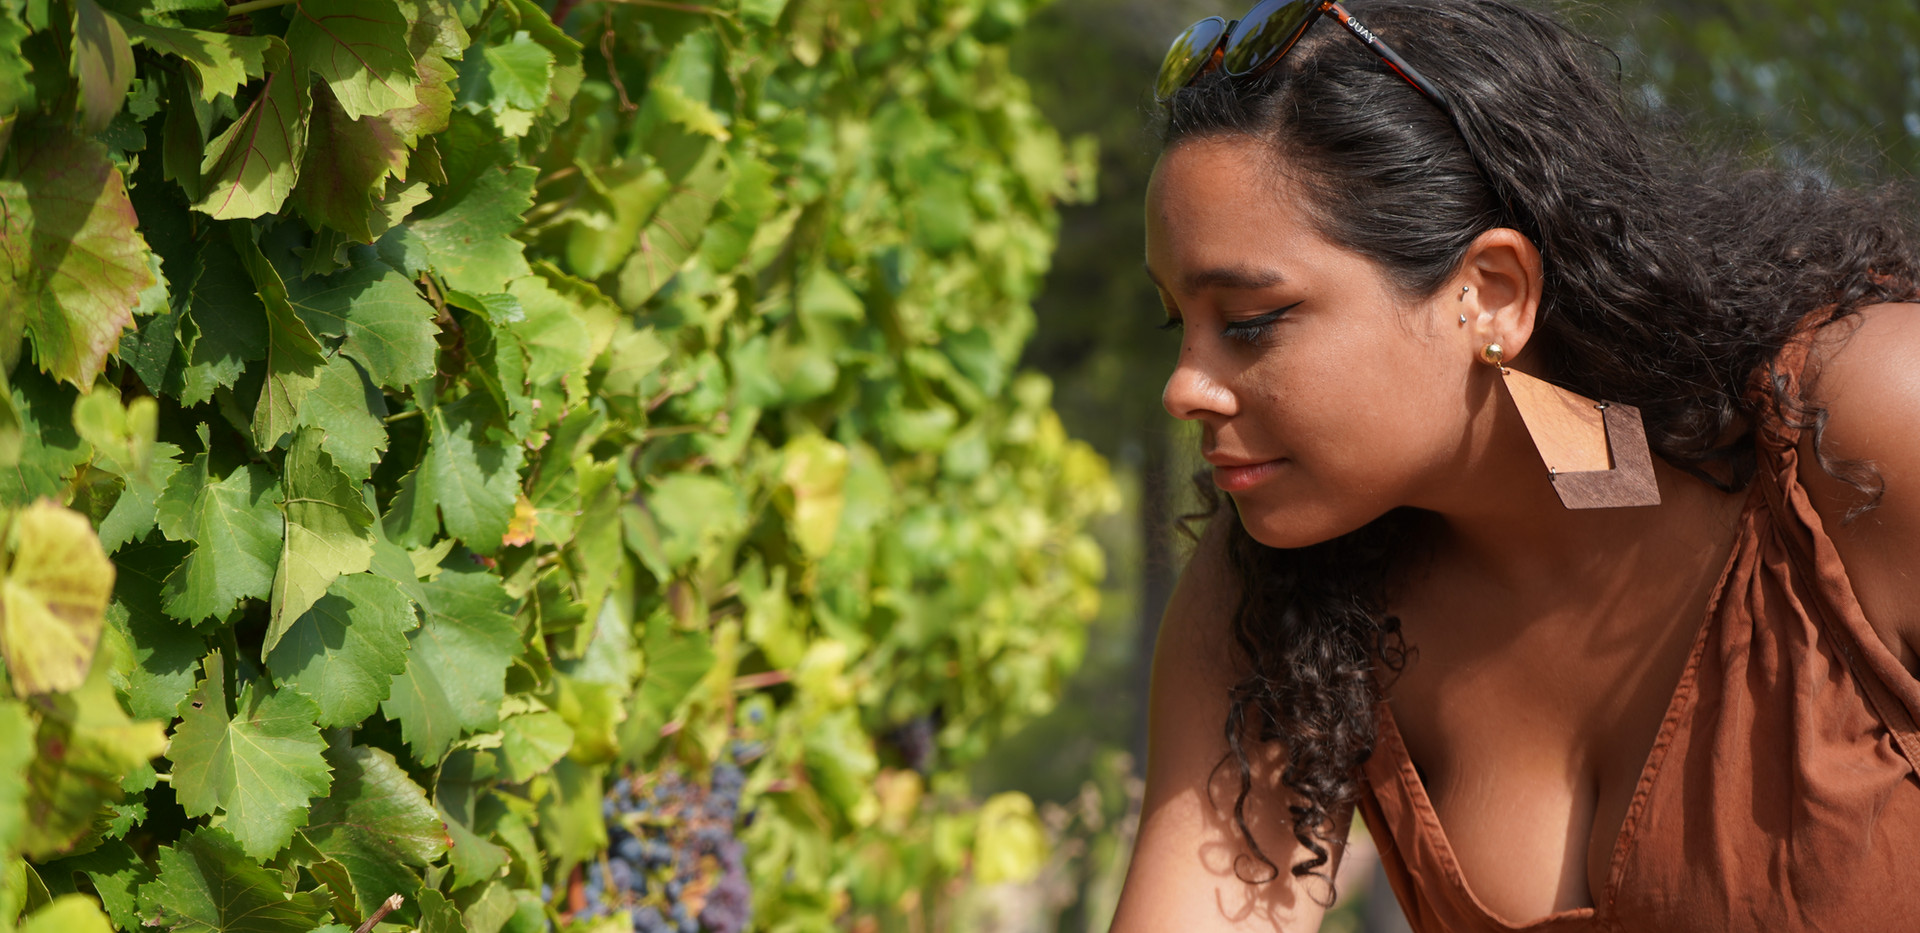 Tasting the grapes